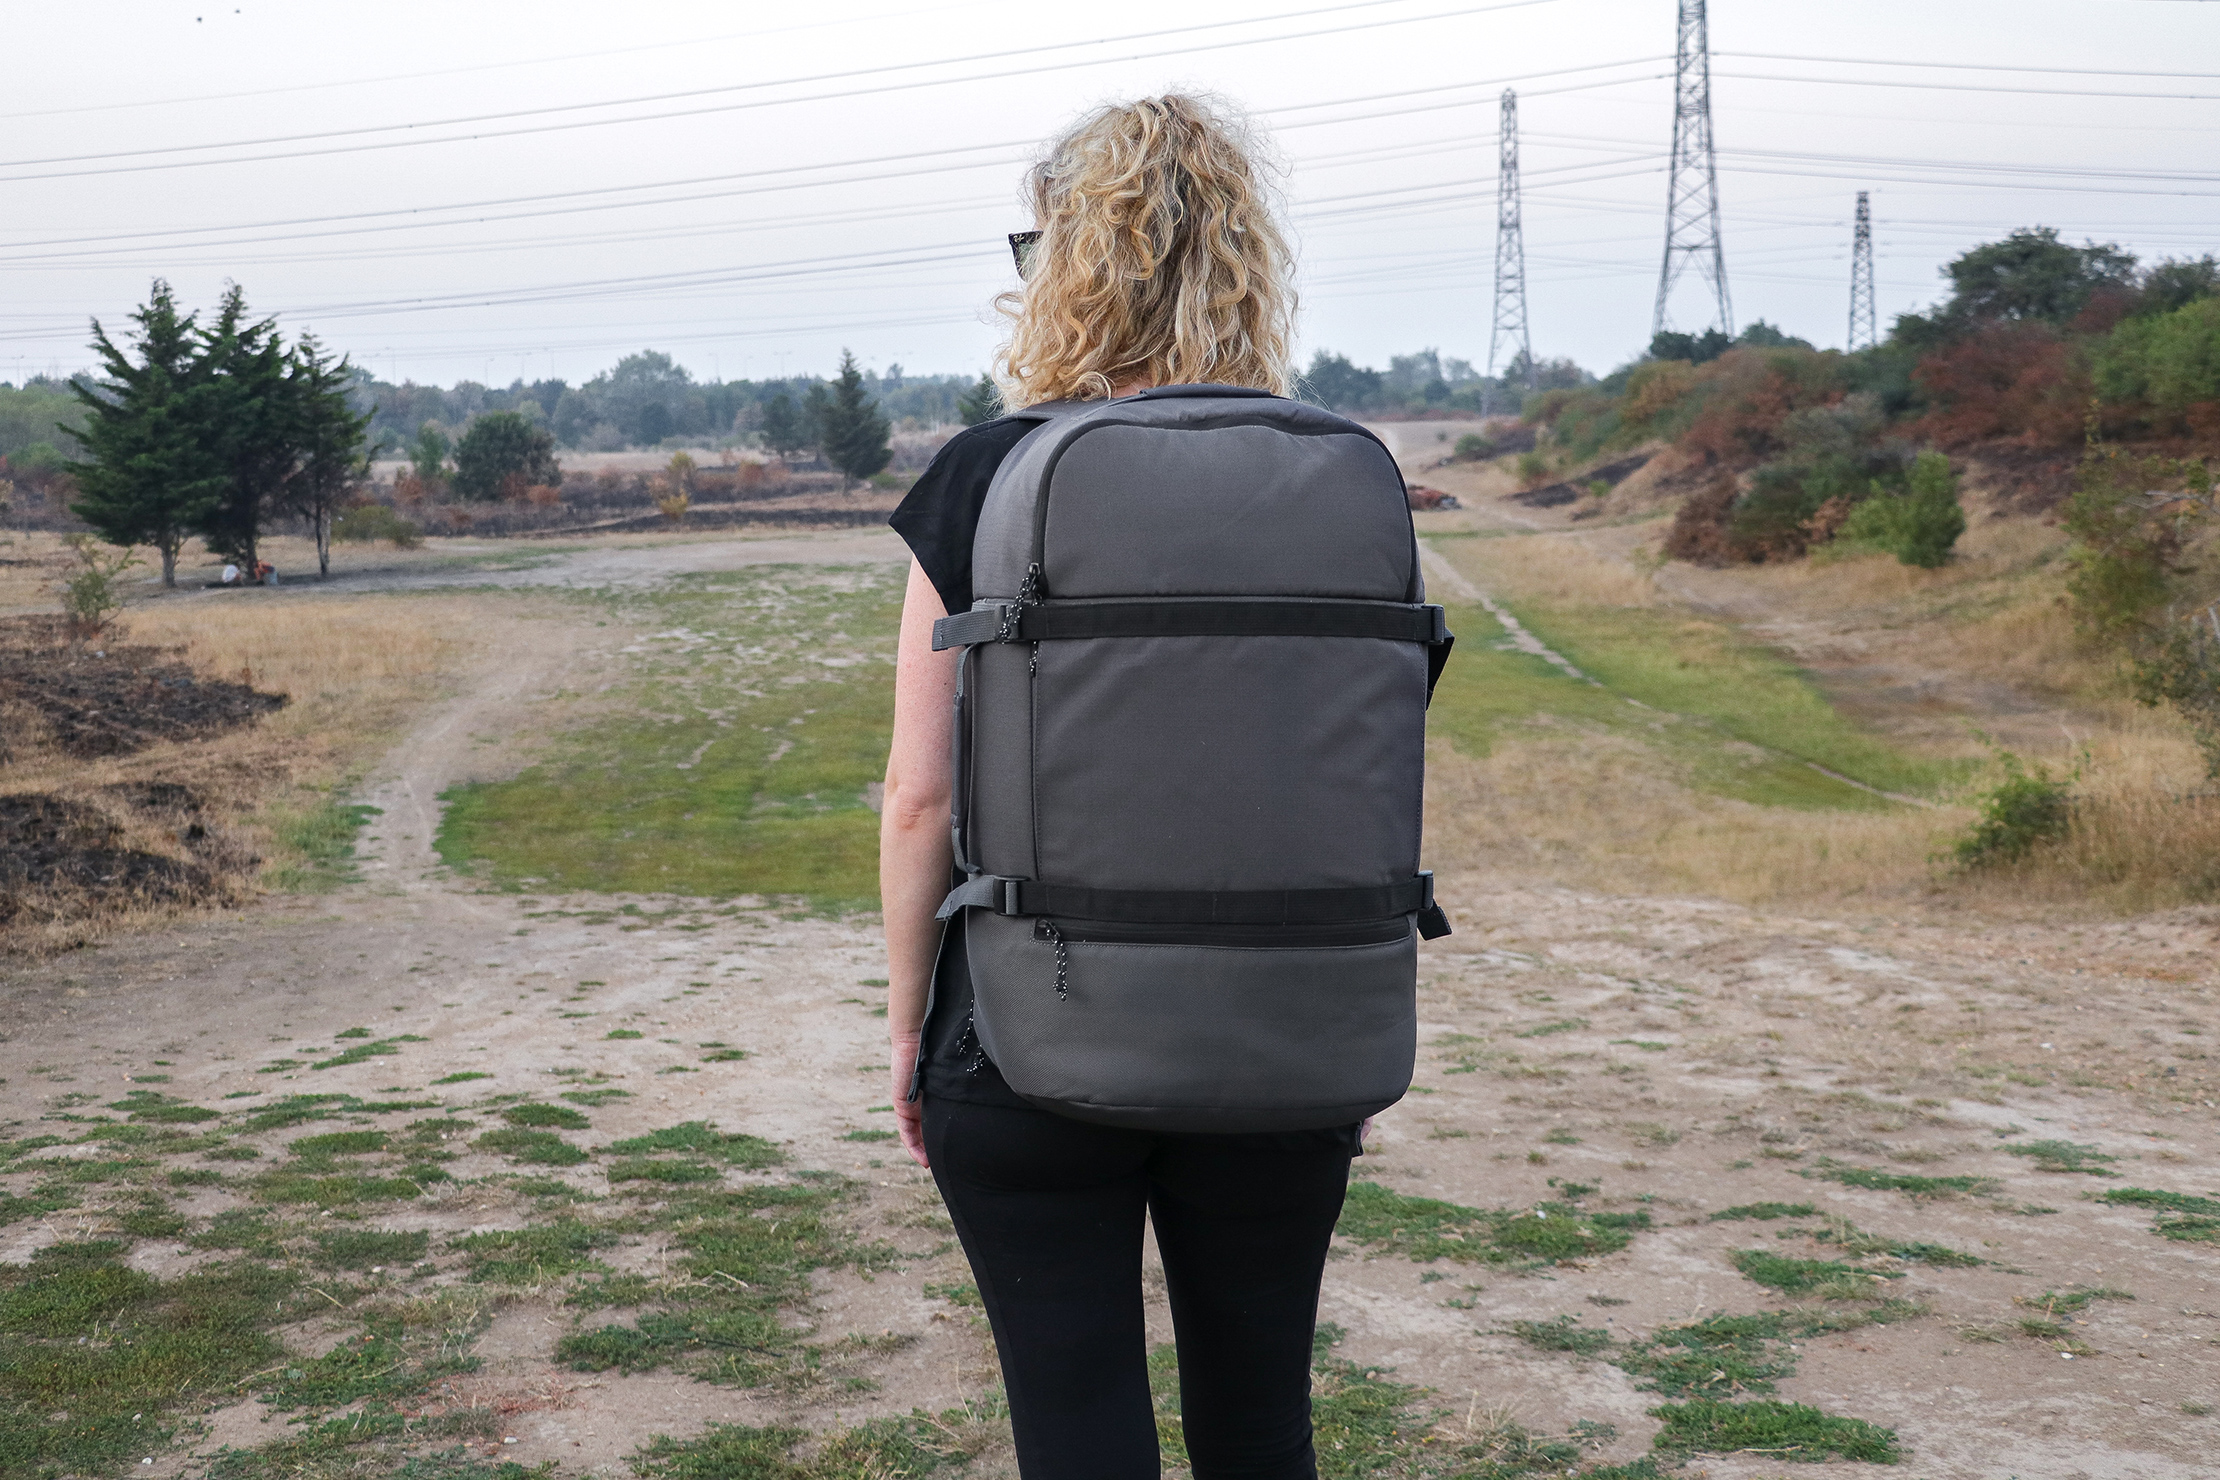 IKEA VARLDENS Backpack 36L in Essex, England